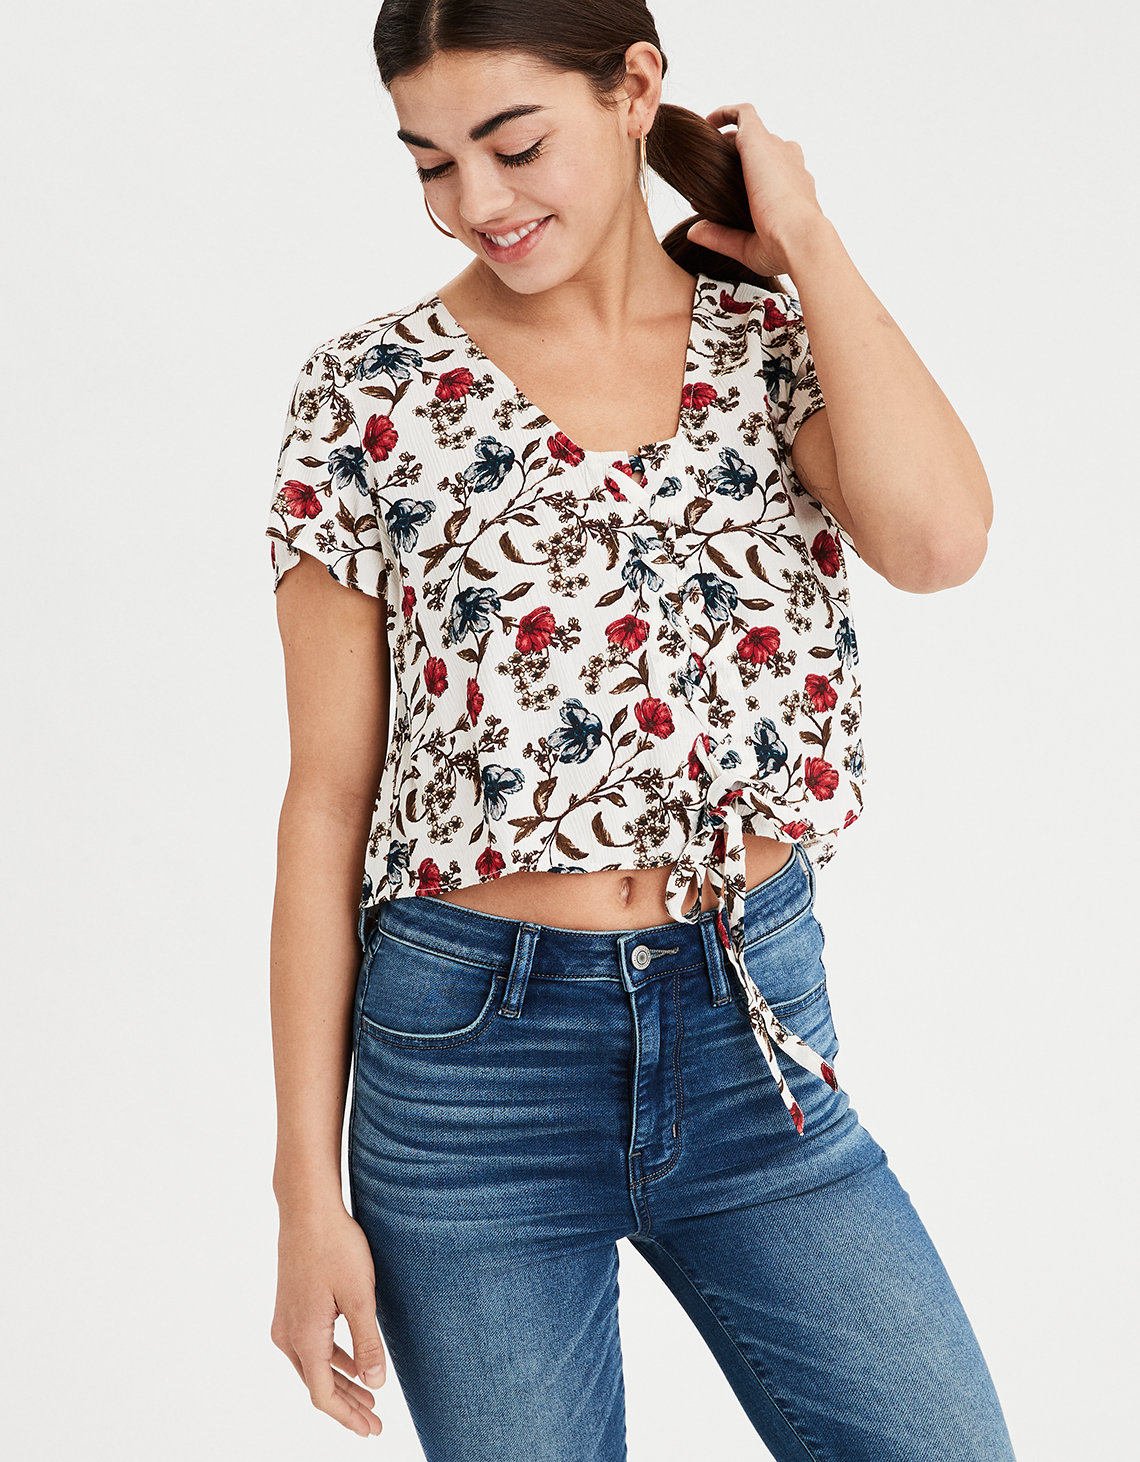 e30be4332d80db AE Floral Lace Up Crop Top. Placeholder image. Product Image